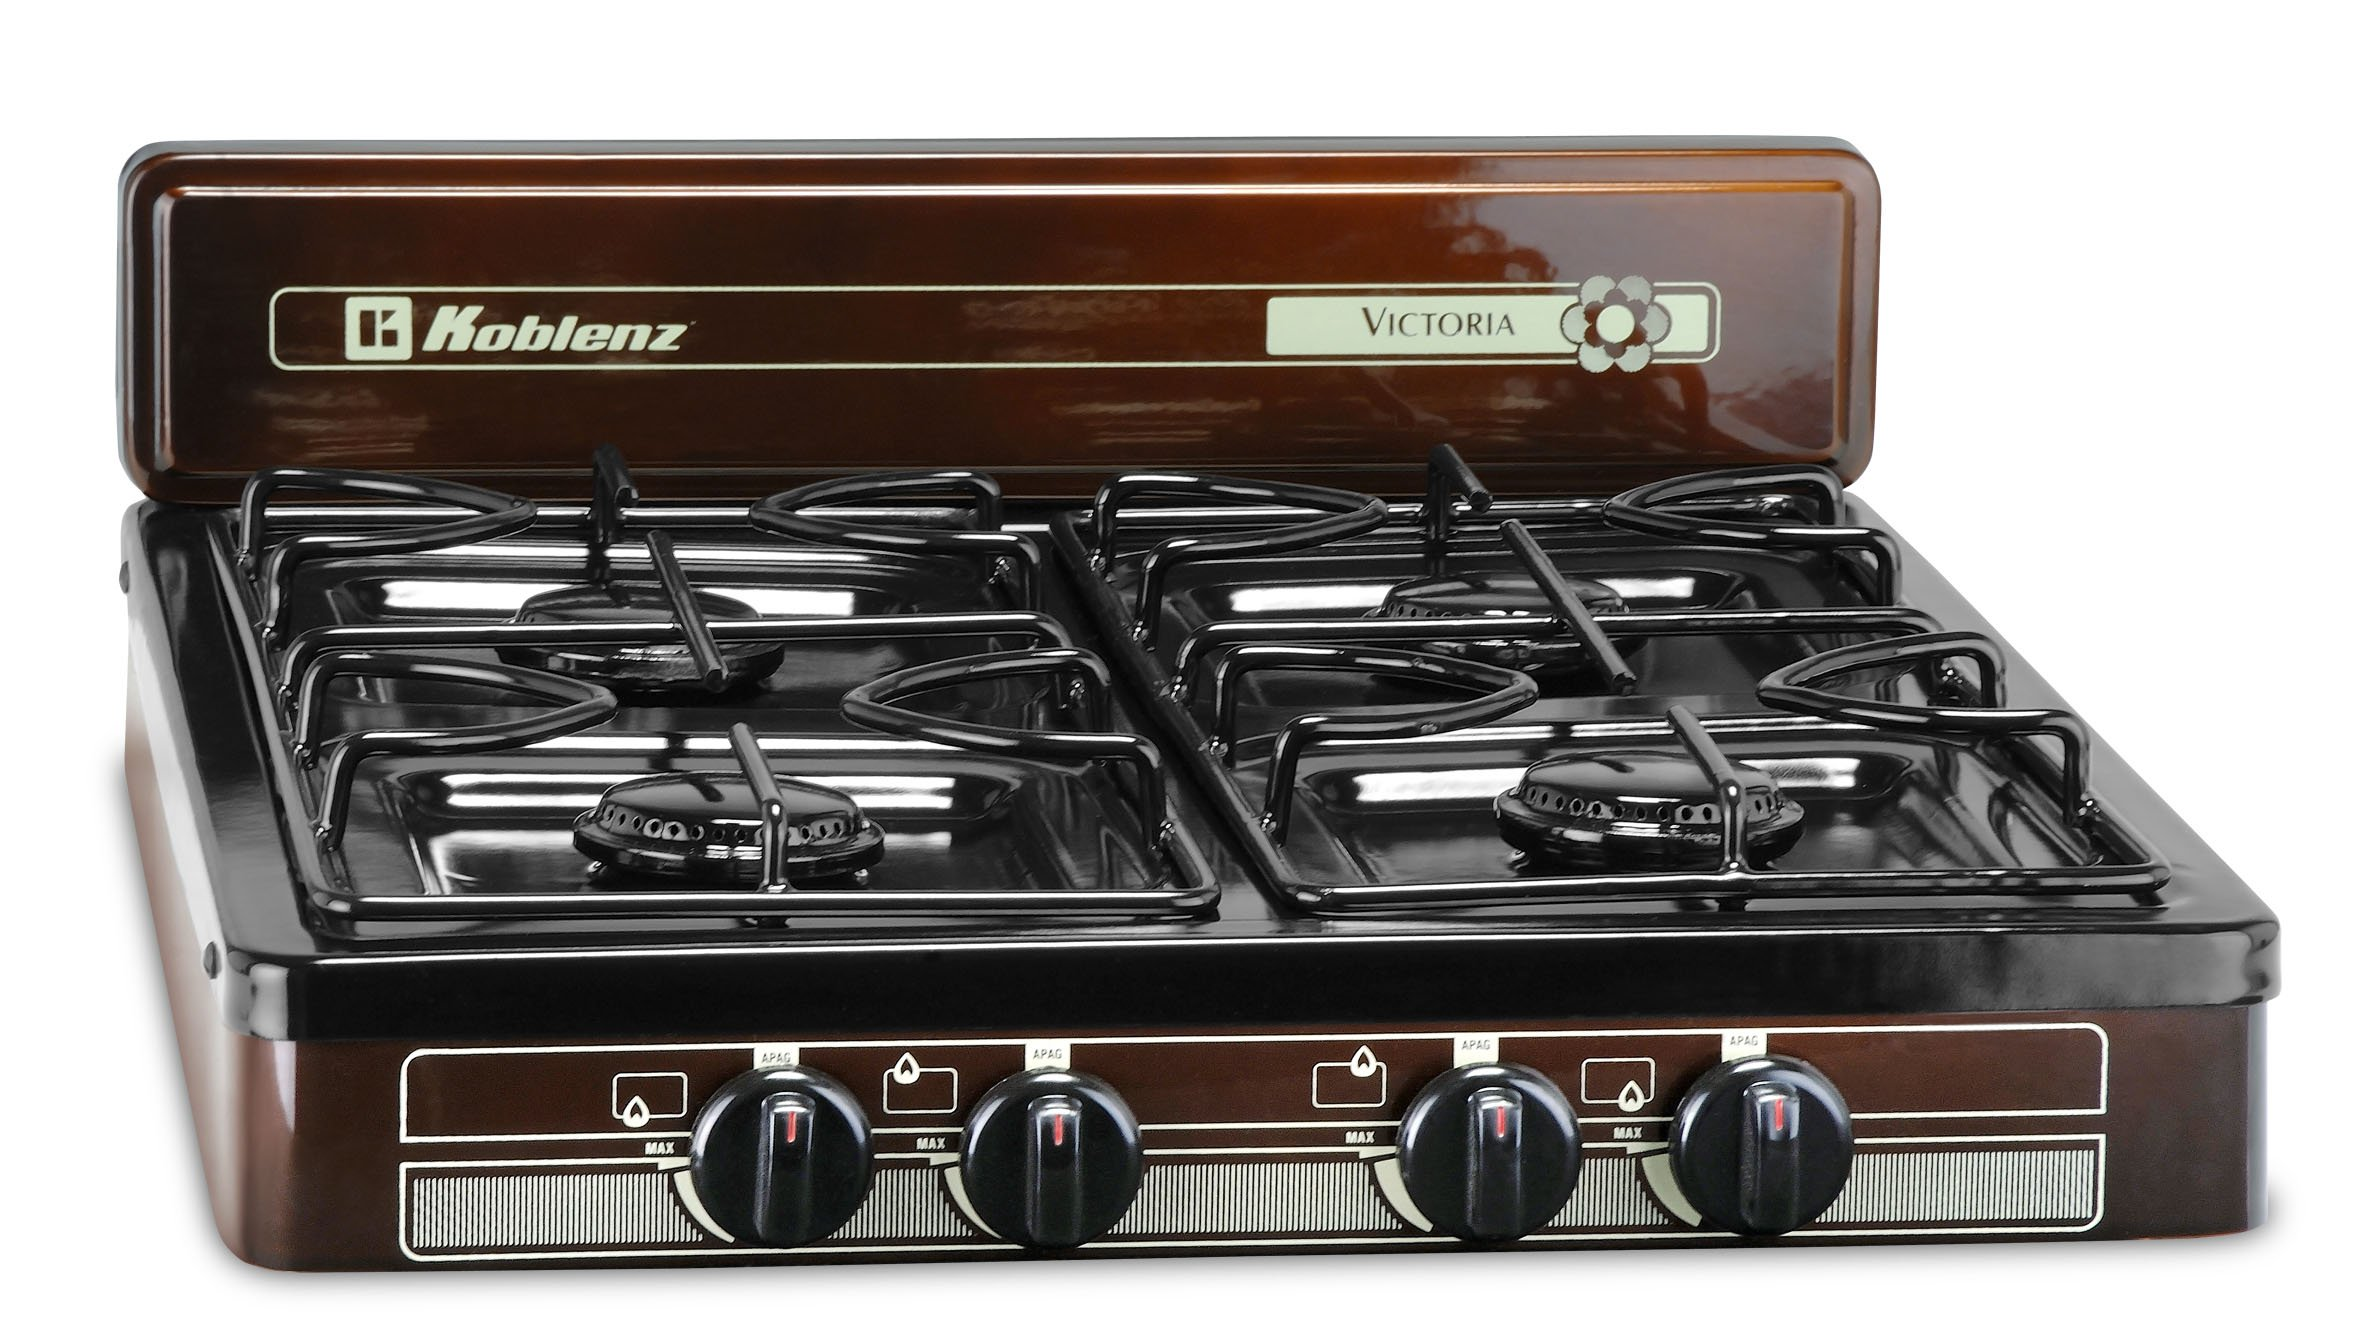 Rv Propane Stove >> Details About 4 Burner Portable Propane Gas Stove Outdoor Camping Cooking Rv Kitchen Cooktop